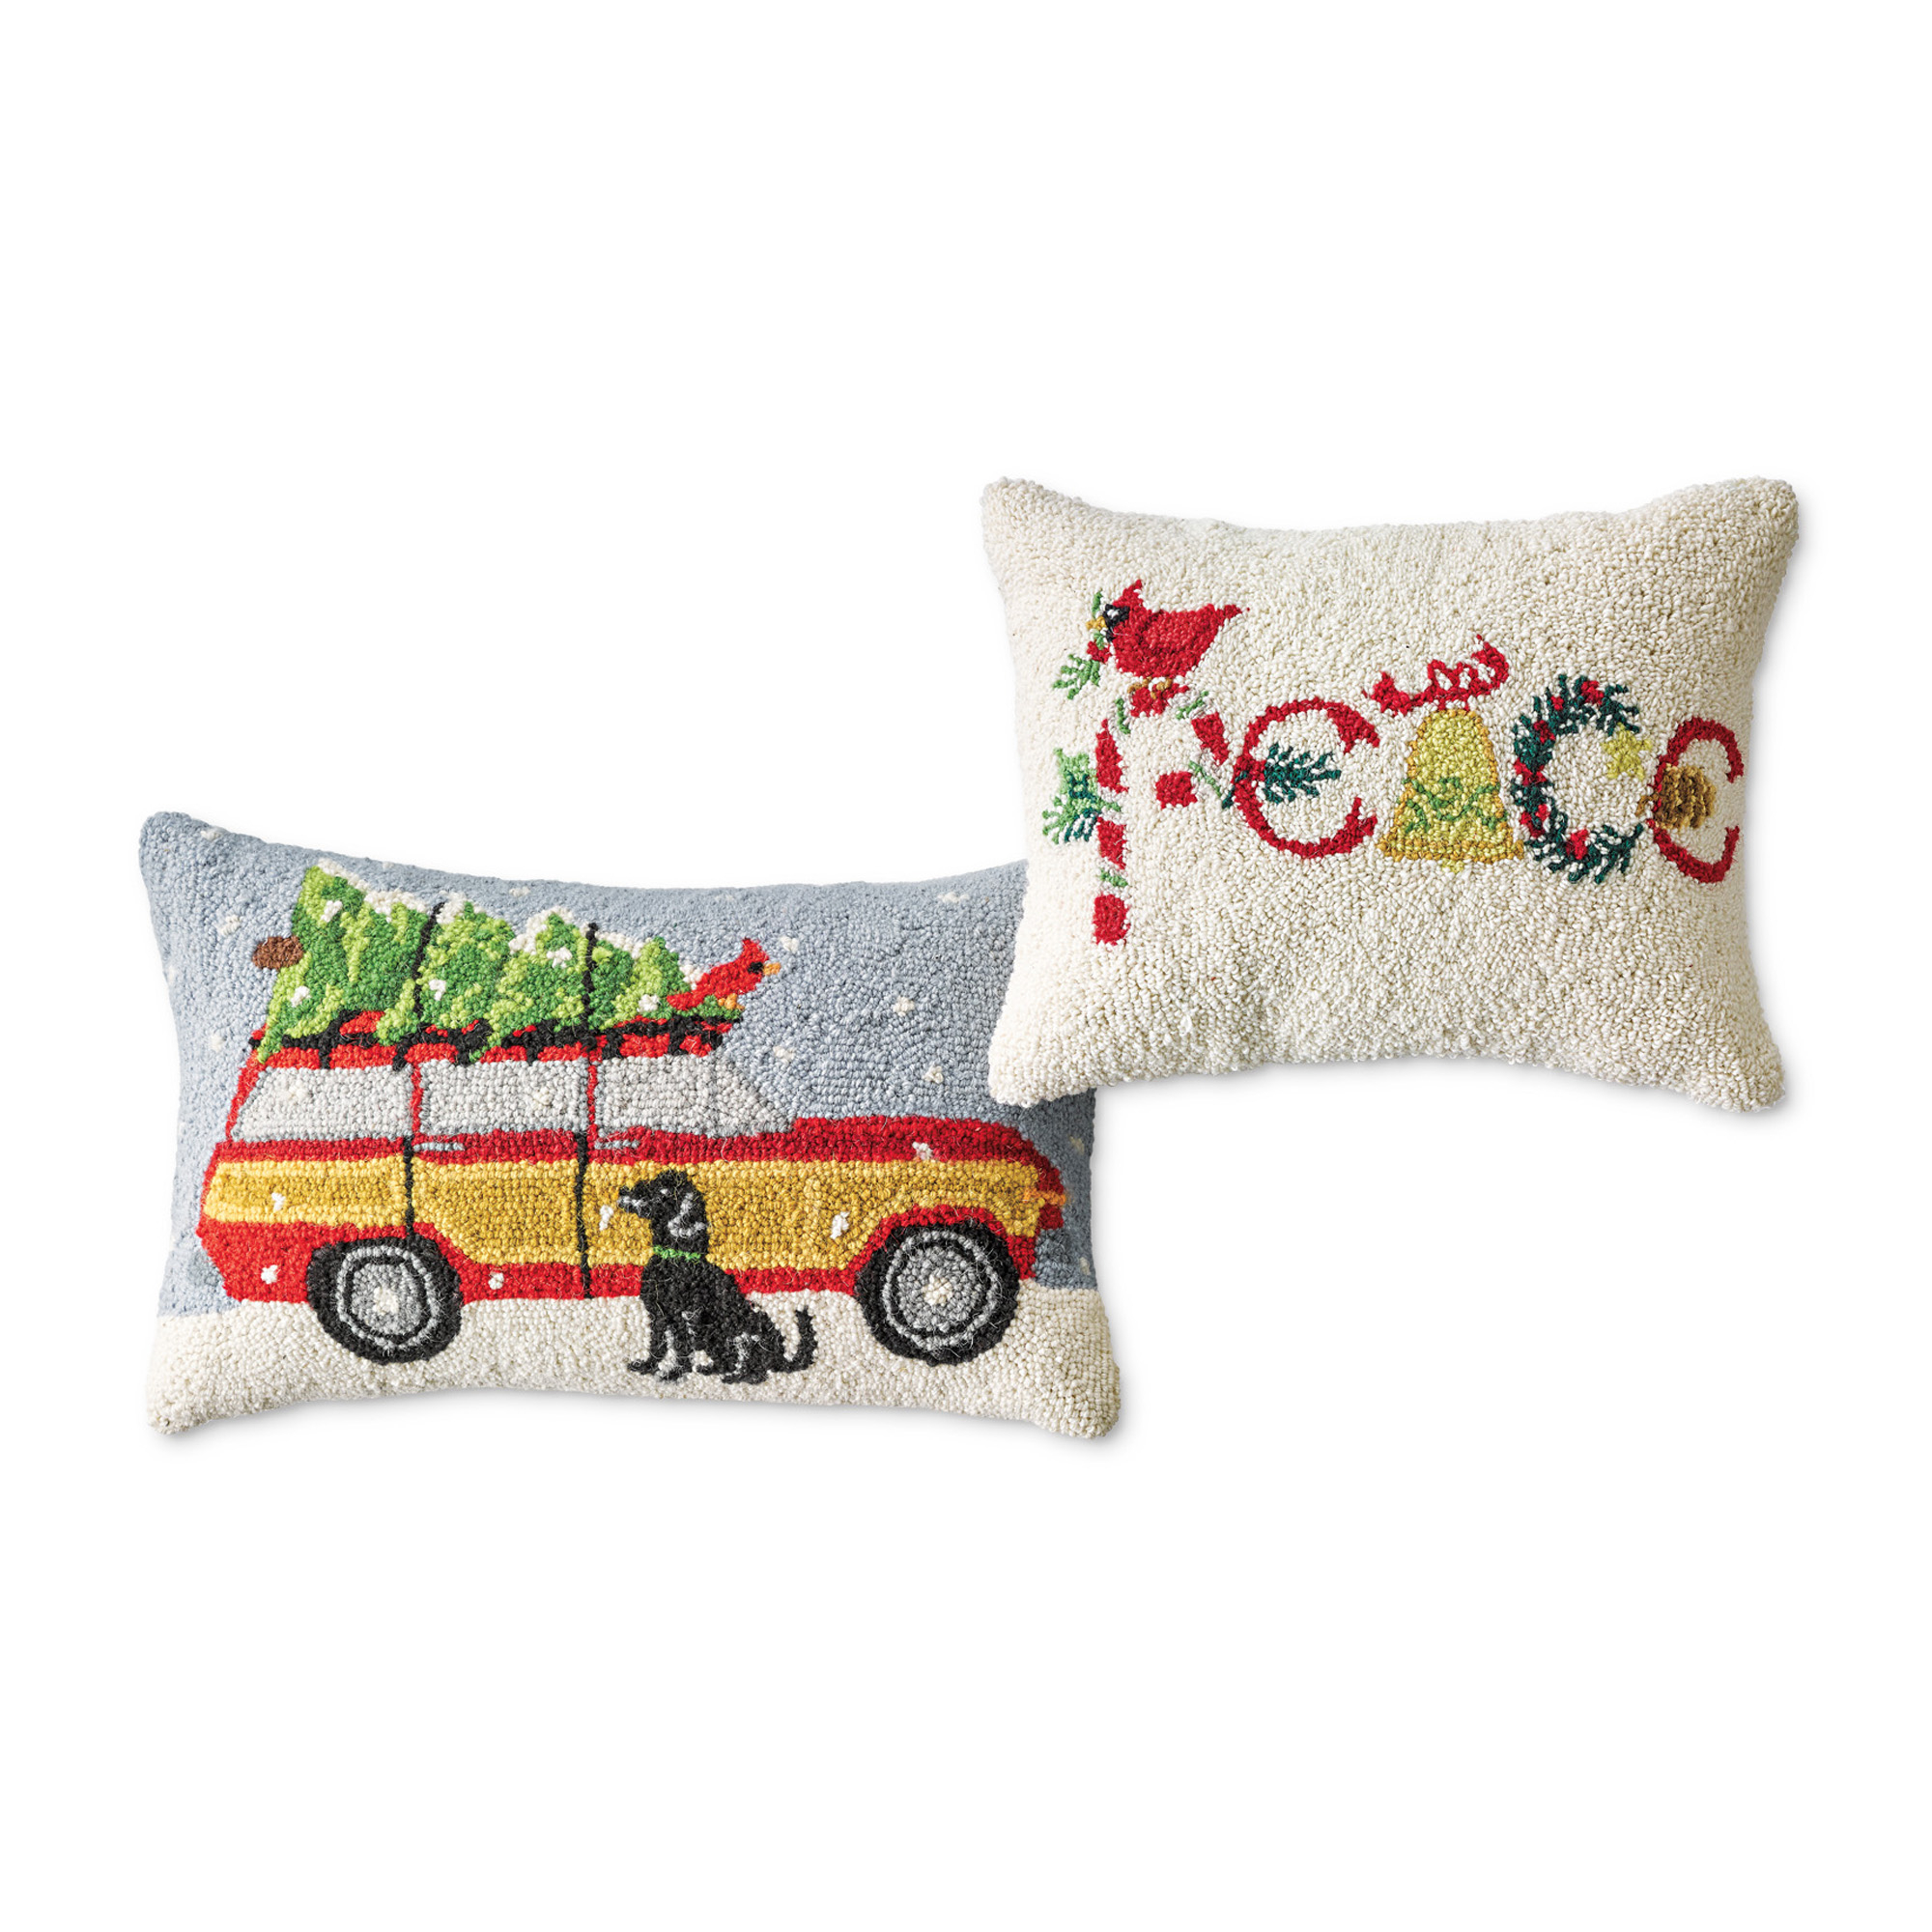 'Christmas Is...' Hooked Pillows